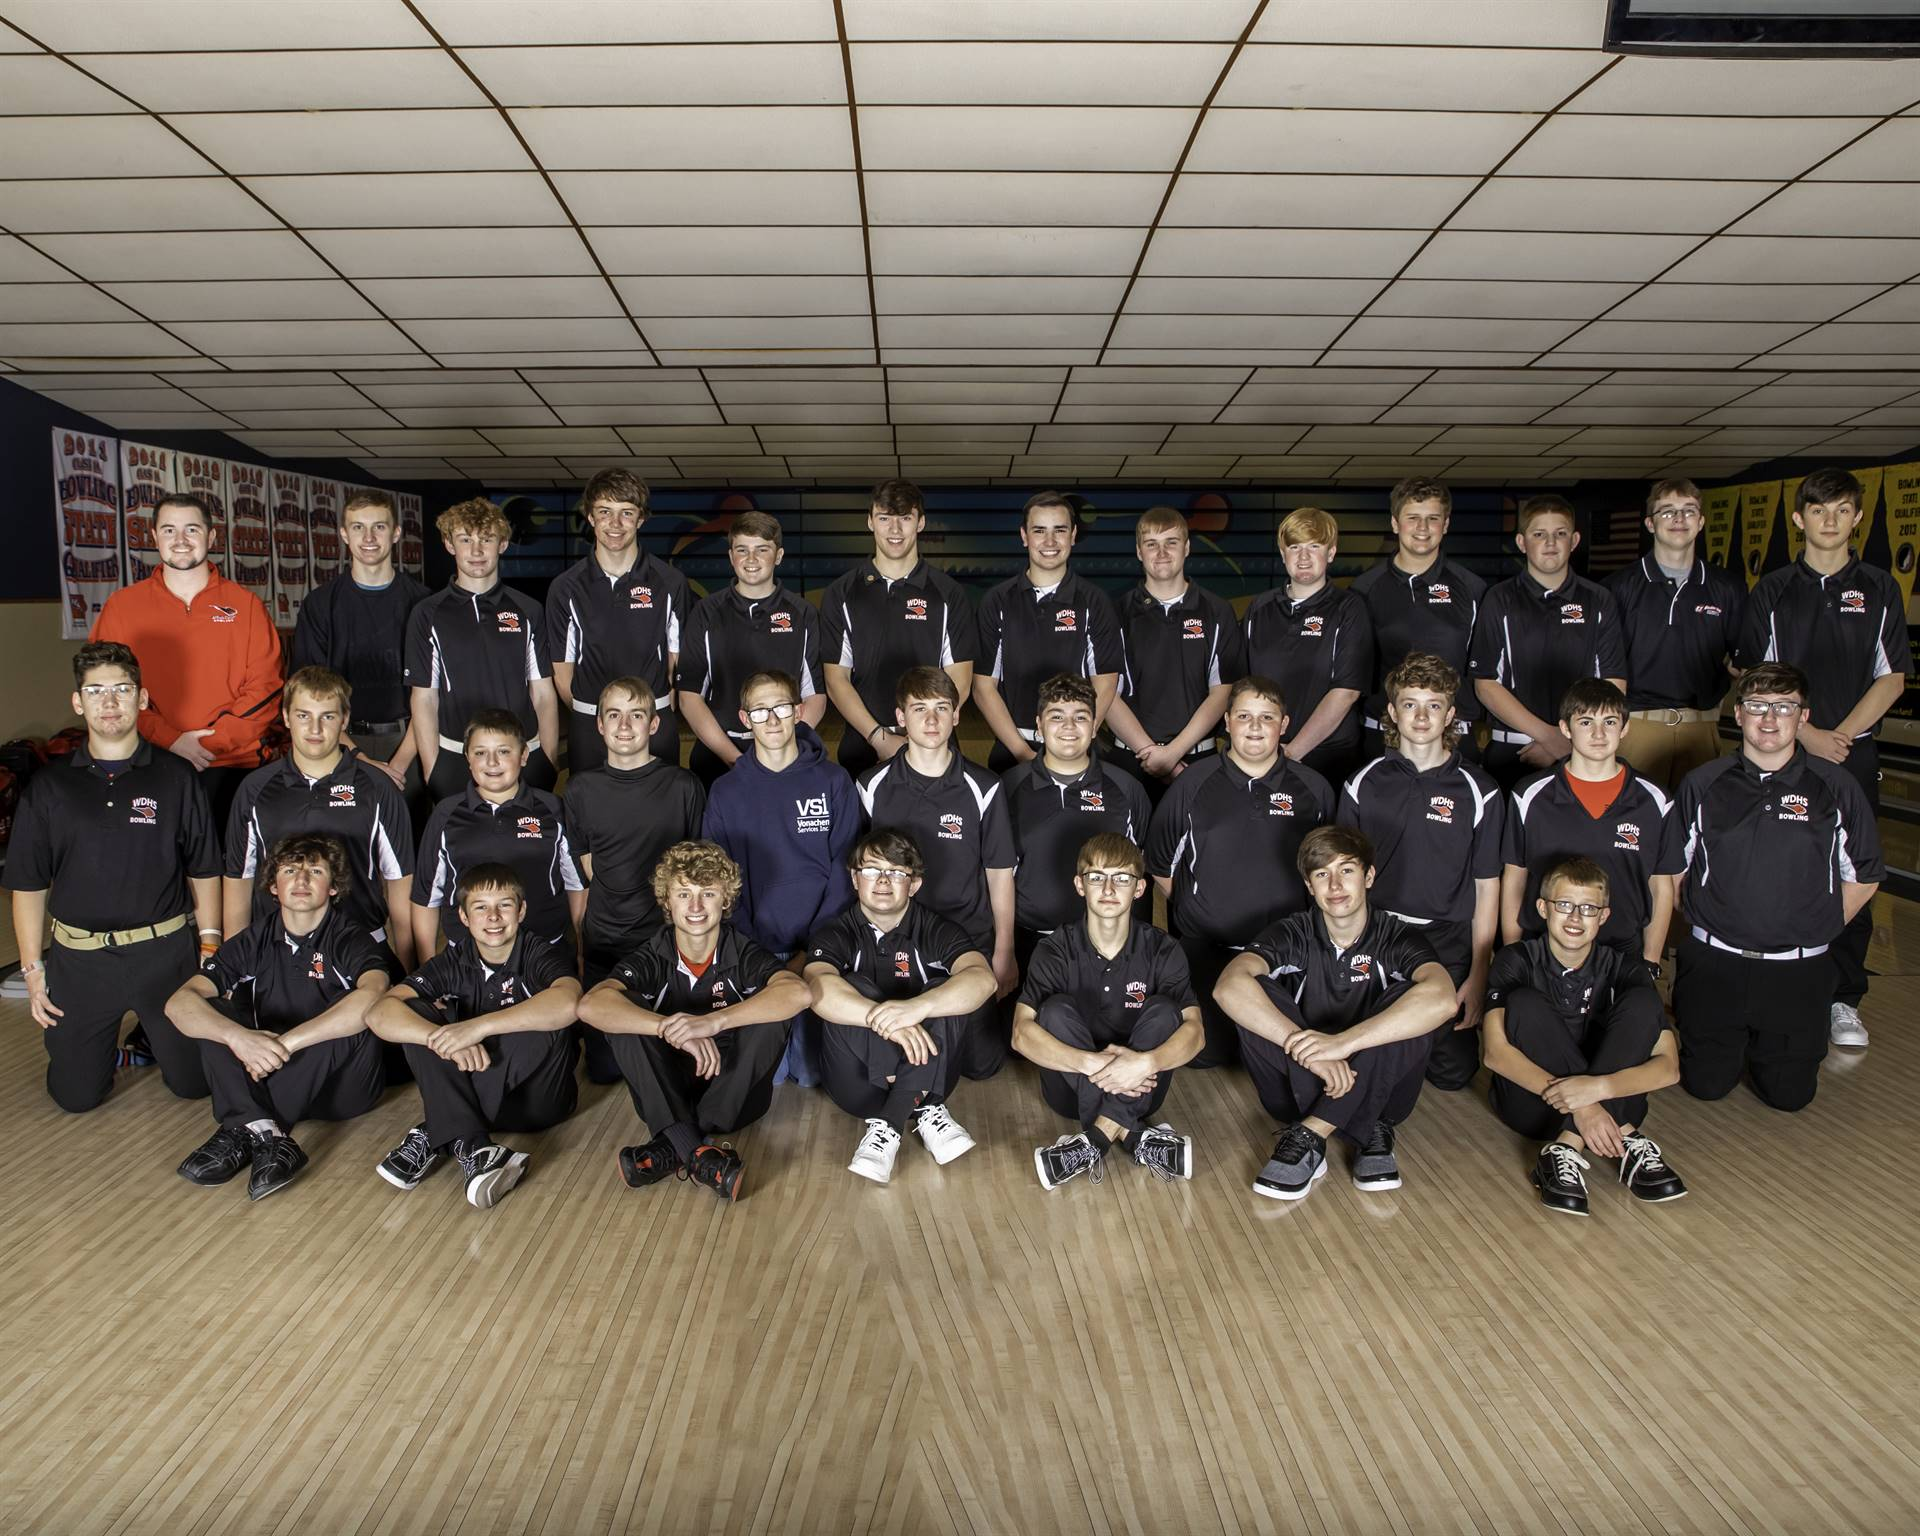 2020-2021 Boys Bowling Team Photo